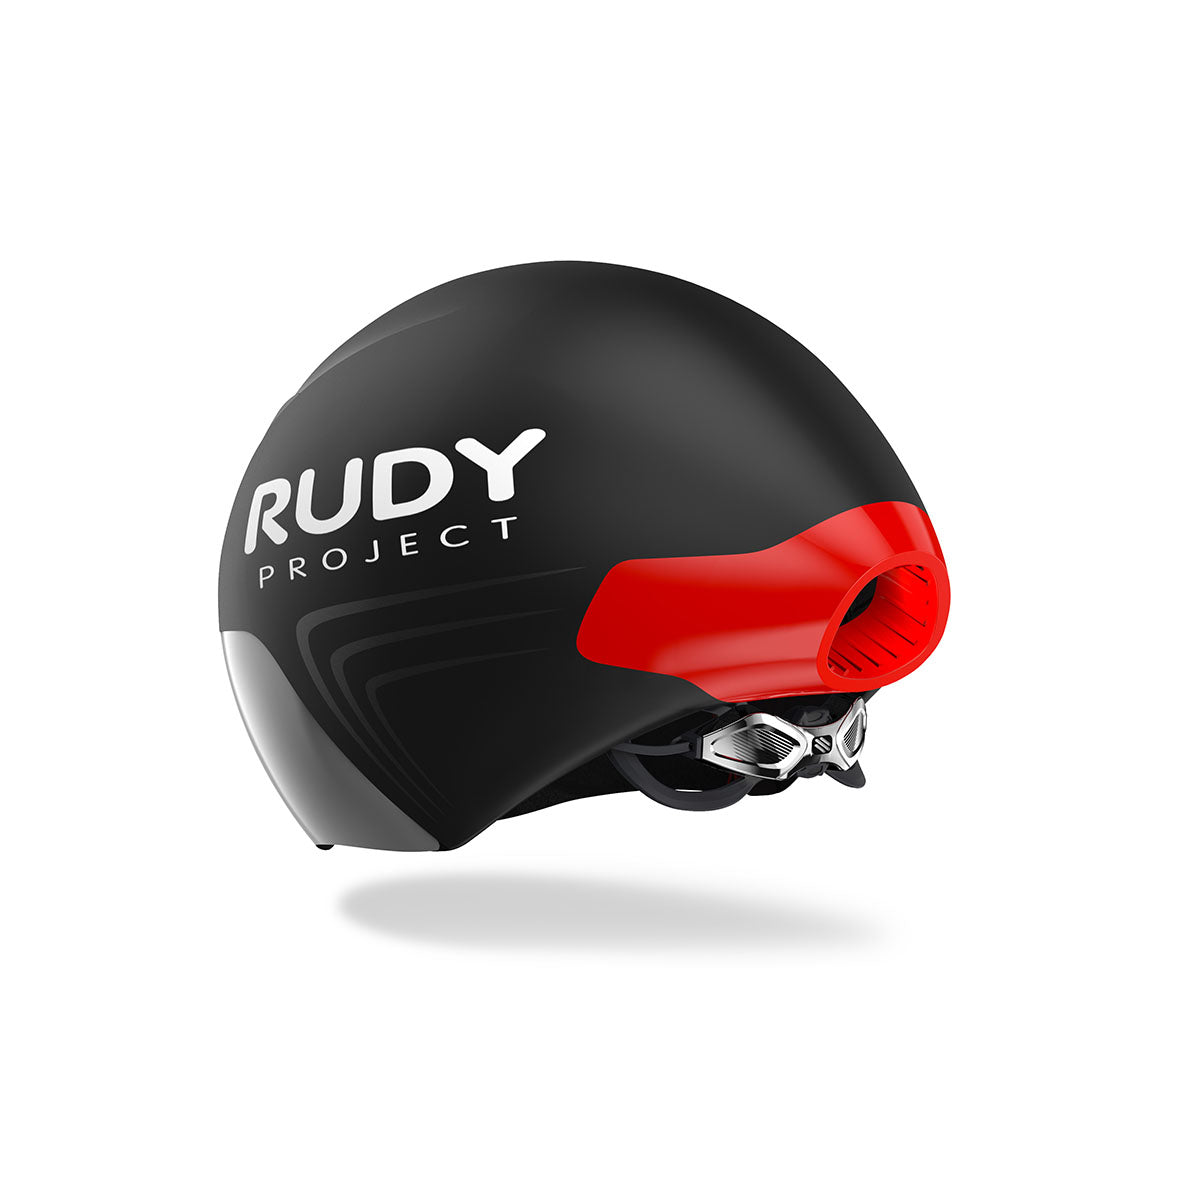 Rudy Project - The Wing - color: Black - photo angle: Back Angle Two Variant Hover Image